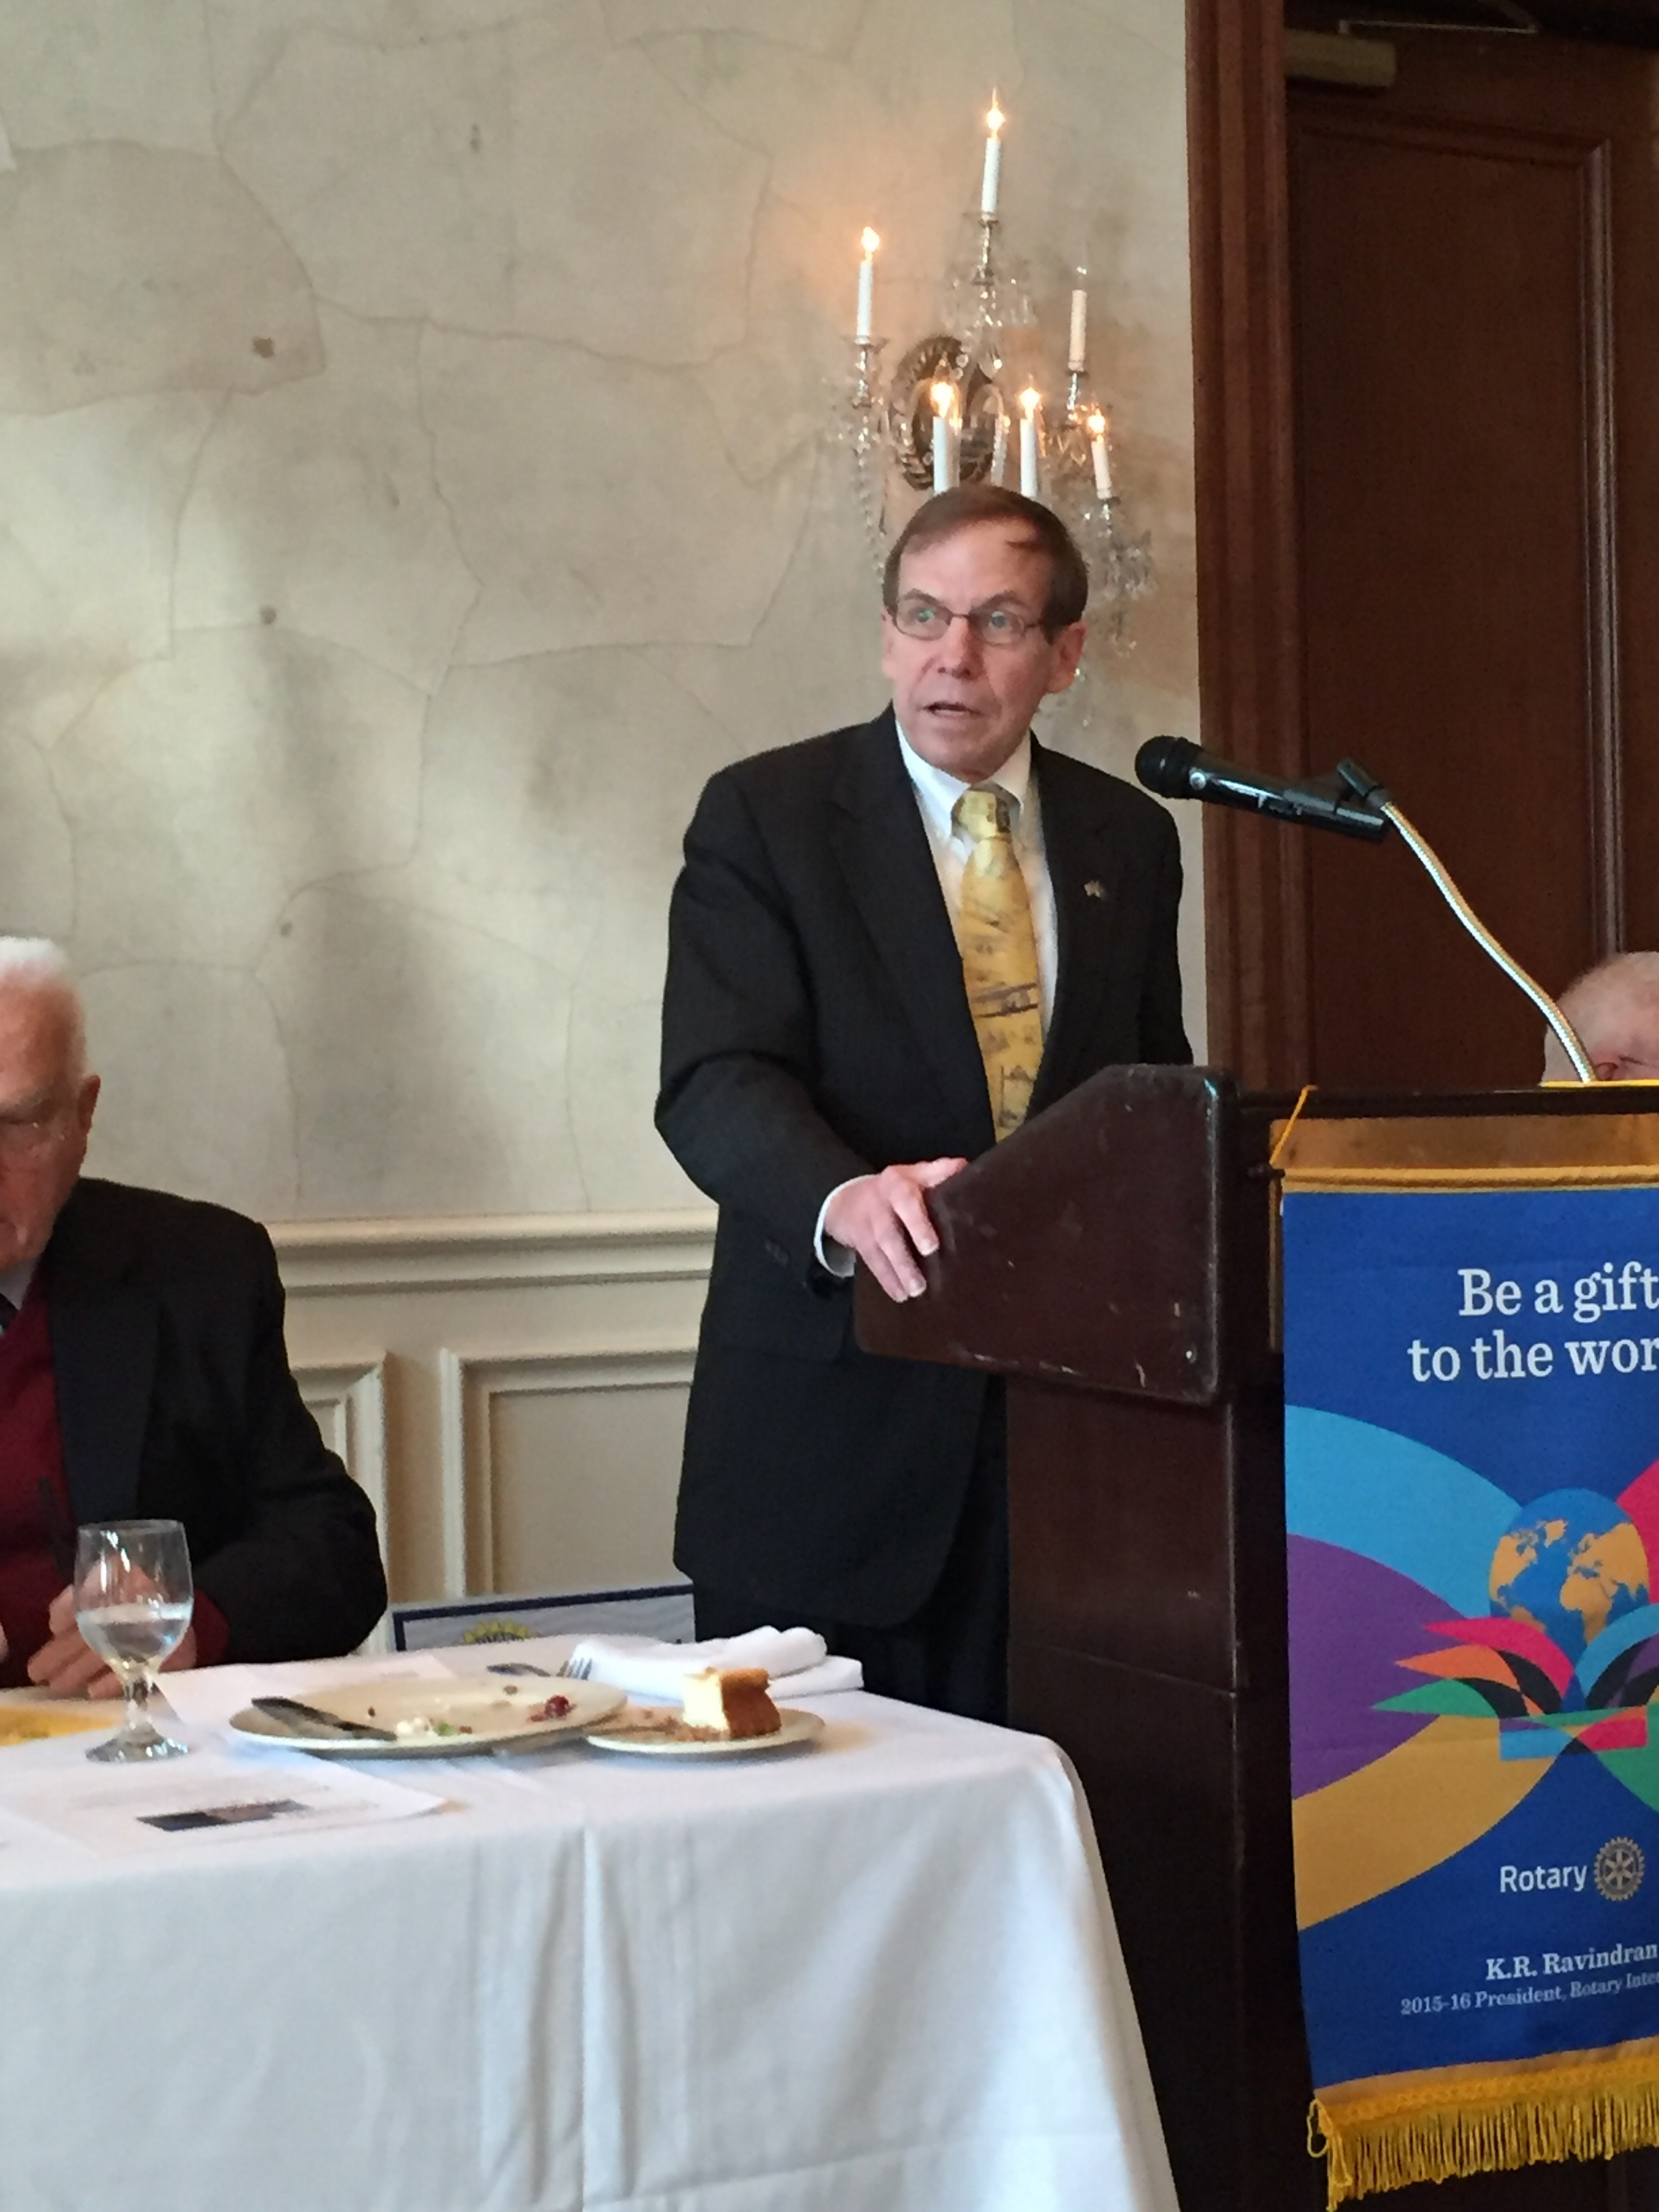 Speaking to High Point Rotary Club, January 14, 2016.